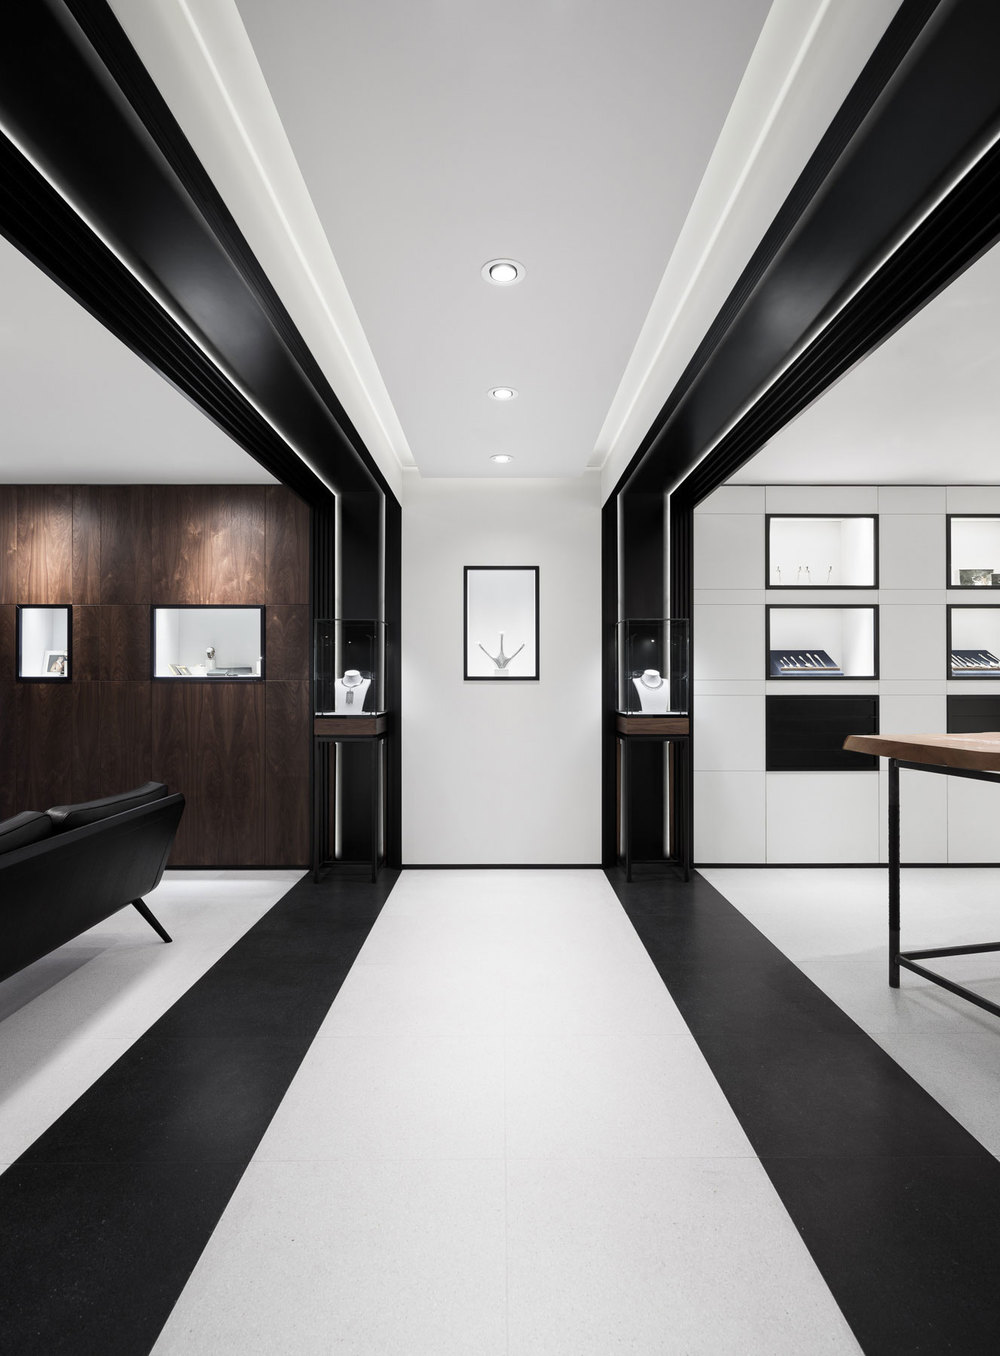 Interior Space Design David Thulstrup Designs Symmetrical Space For Georg Jensen